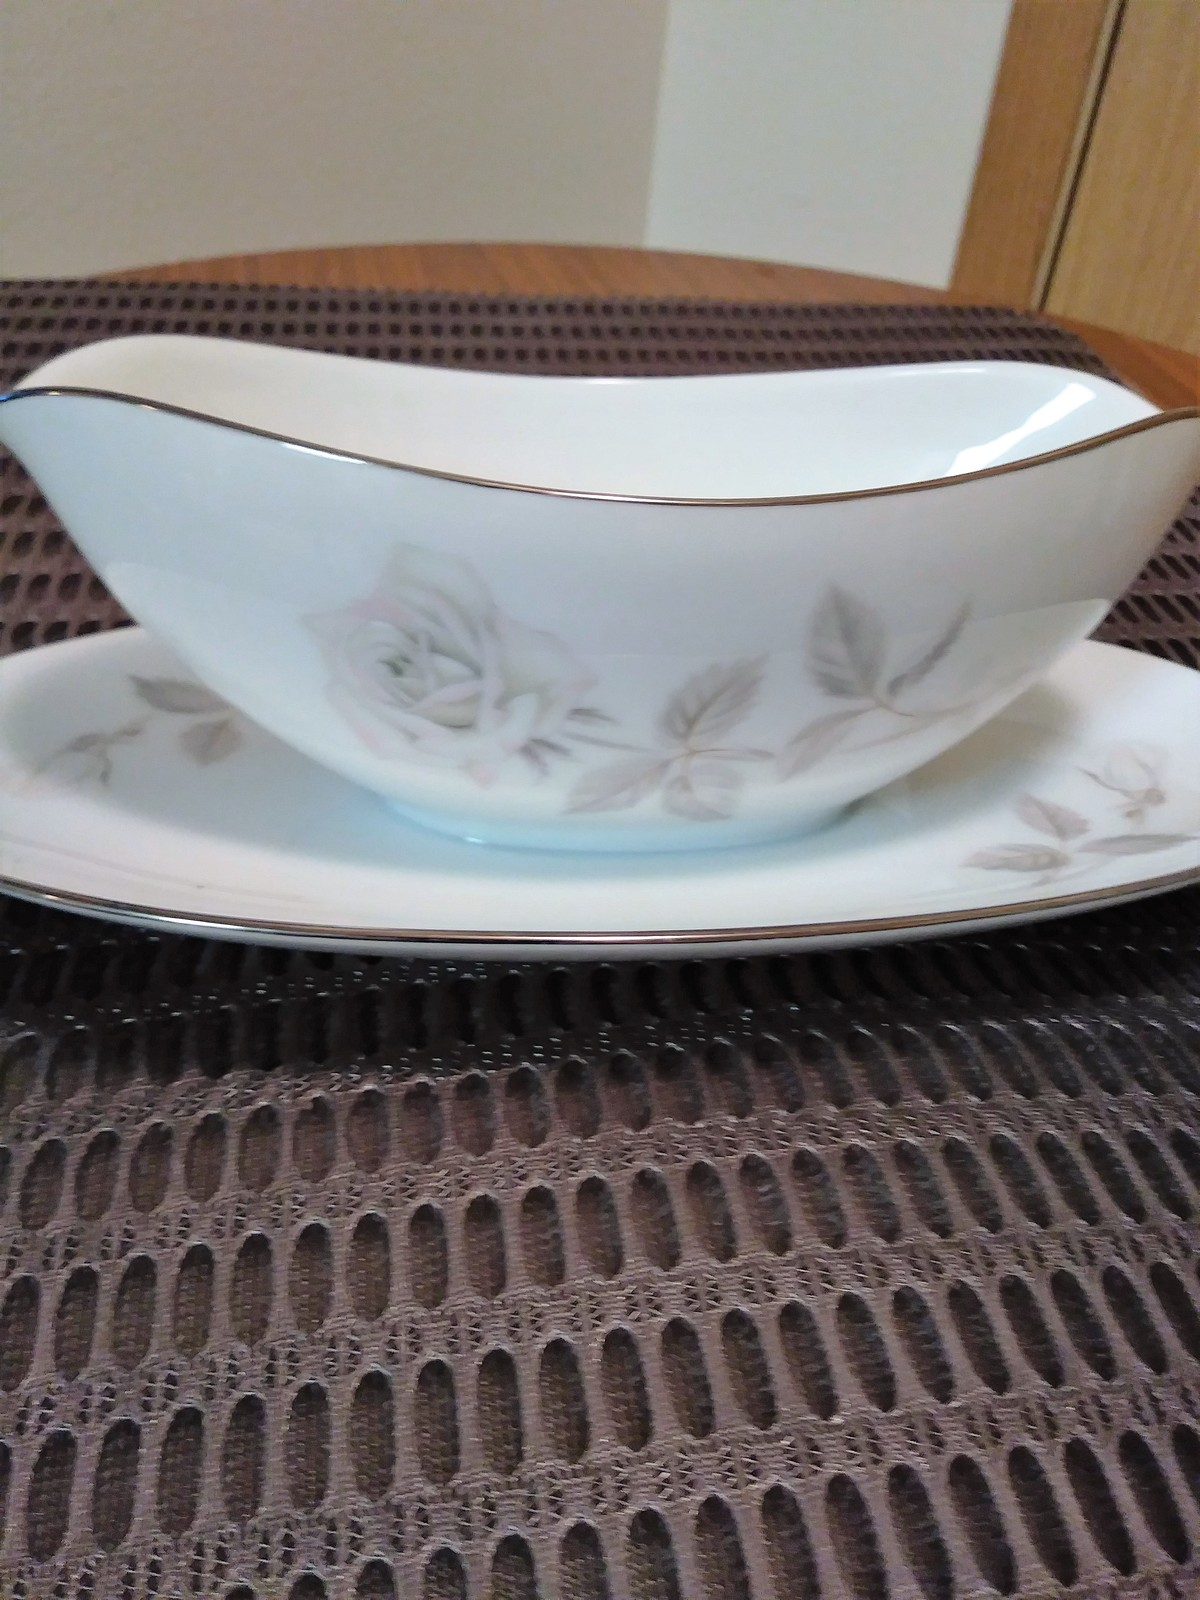 Rare Noritake China Gravy Boat with Attached Underplate Melrose 6002 Gravy Boat